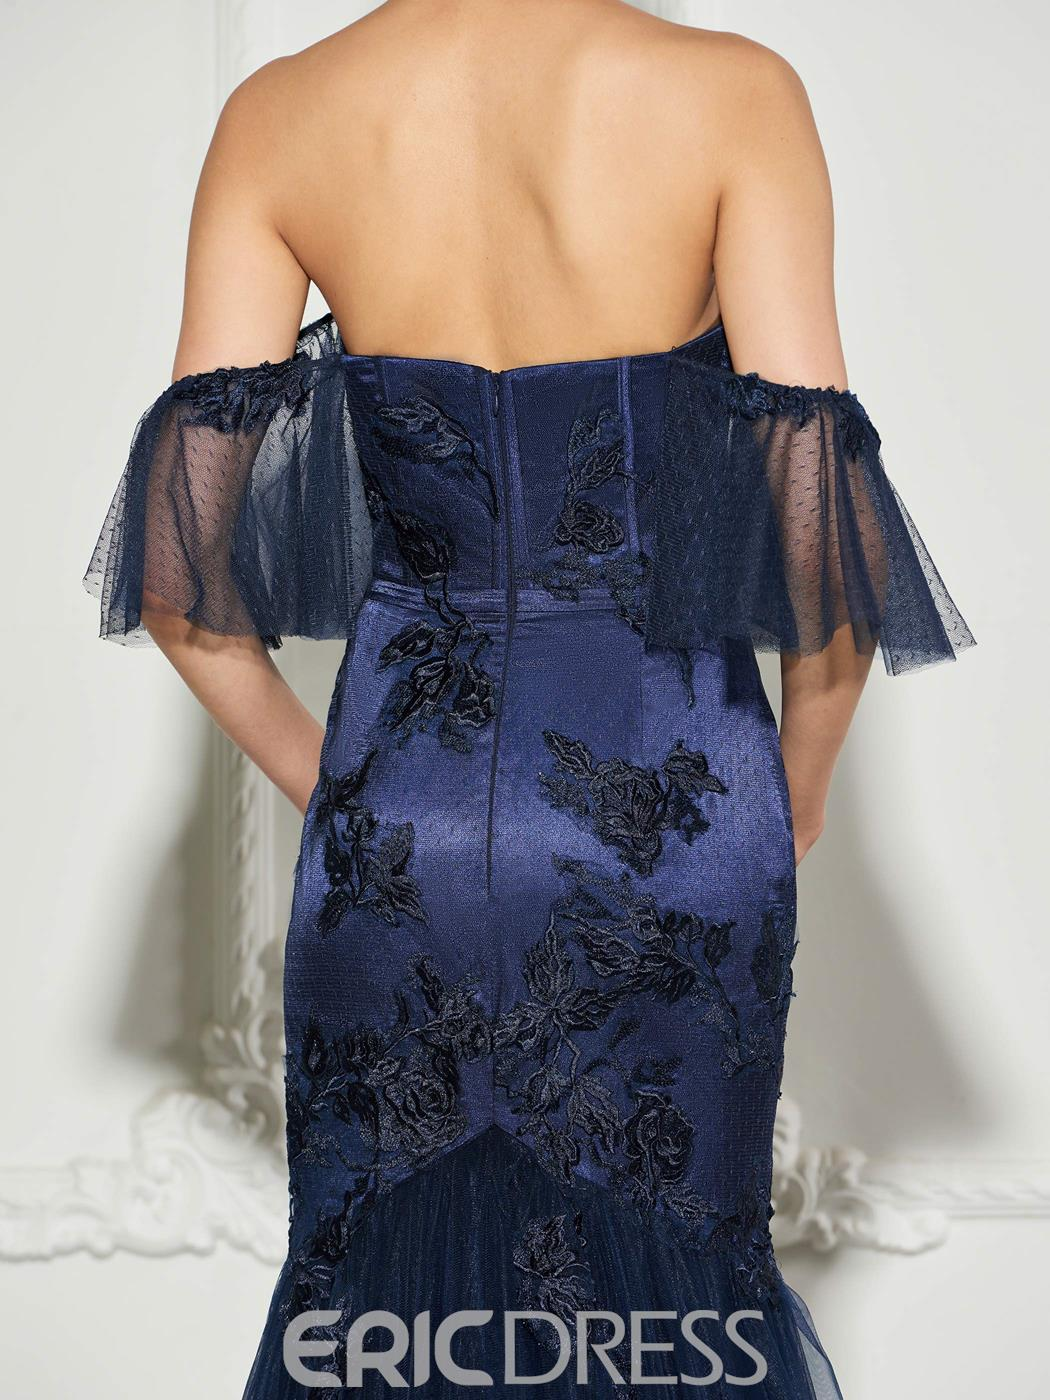 Ericdress Lace Applique Off The Shoulder Mermaid Evening Dress